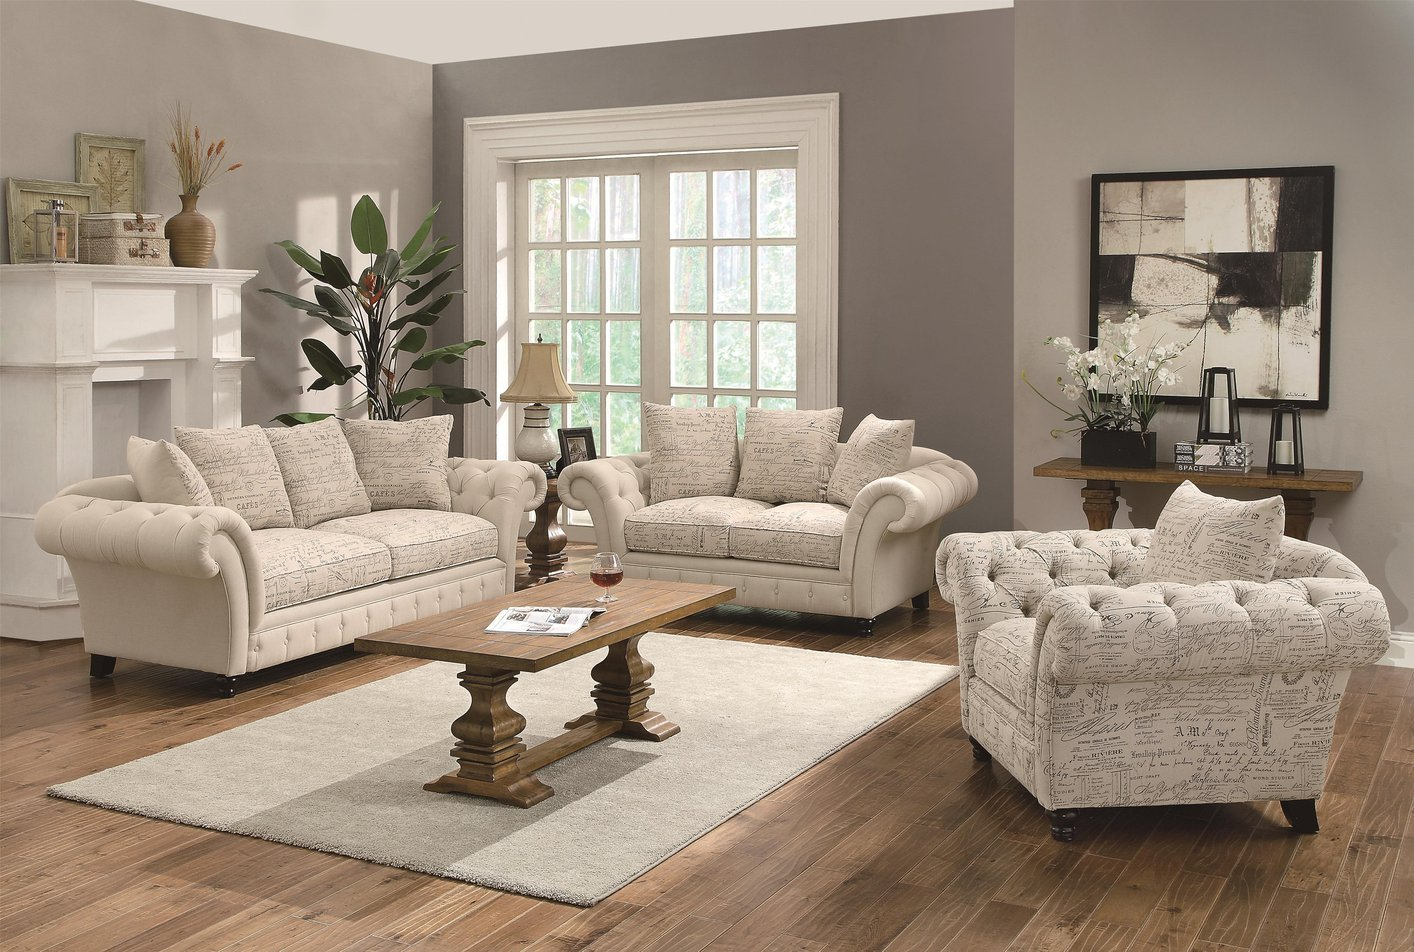 Willow Beige Fabric Sofa Steal A Sofa Furniture Outlet